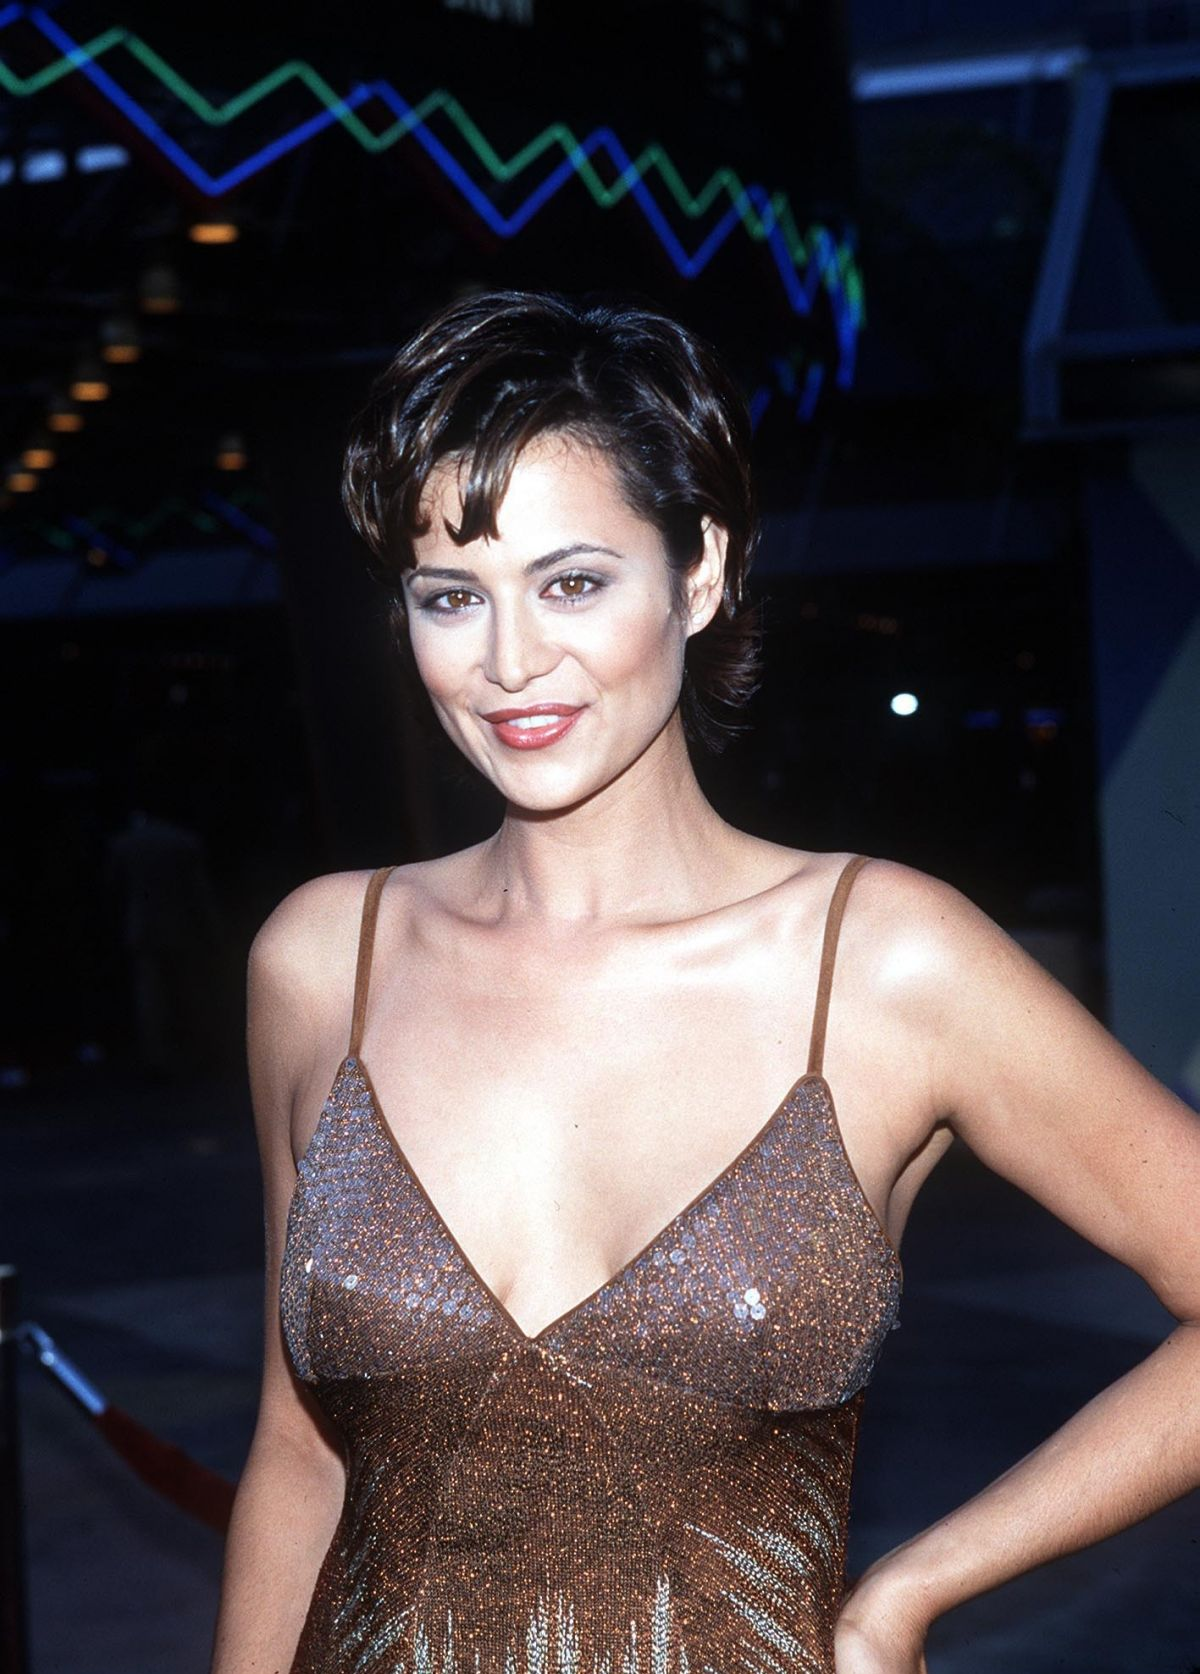 catherine bell 2016catherine bell instagram, catherine bell 2015, catherine bell 2016, catherine bell wallpaper, catherine bell photo, catherine bell jim carrey, catherine bell interview, catherine bell, catherine bell imdb, catherine bell jag, catherine bell 2014, catherine bell wiki, catherine bell facebook, catherine bell twitter